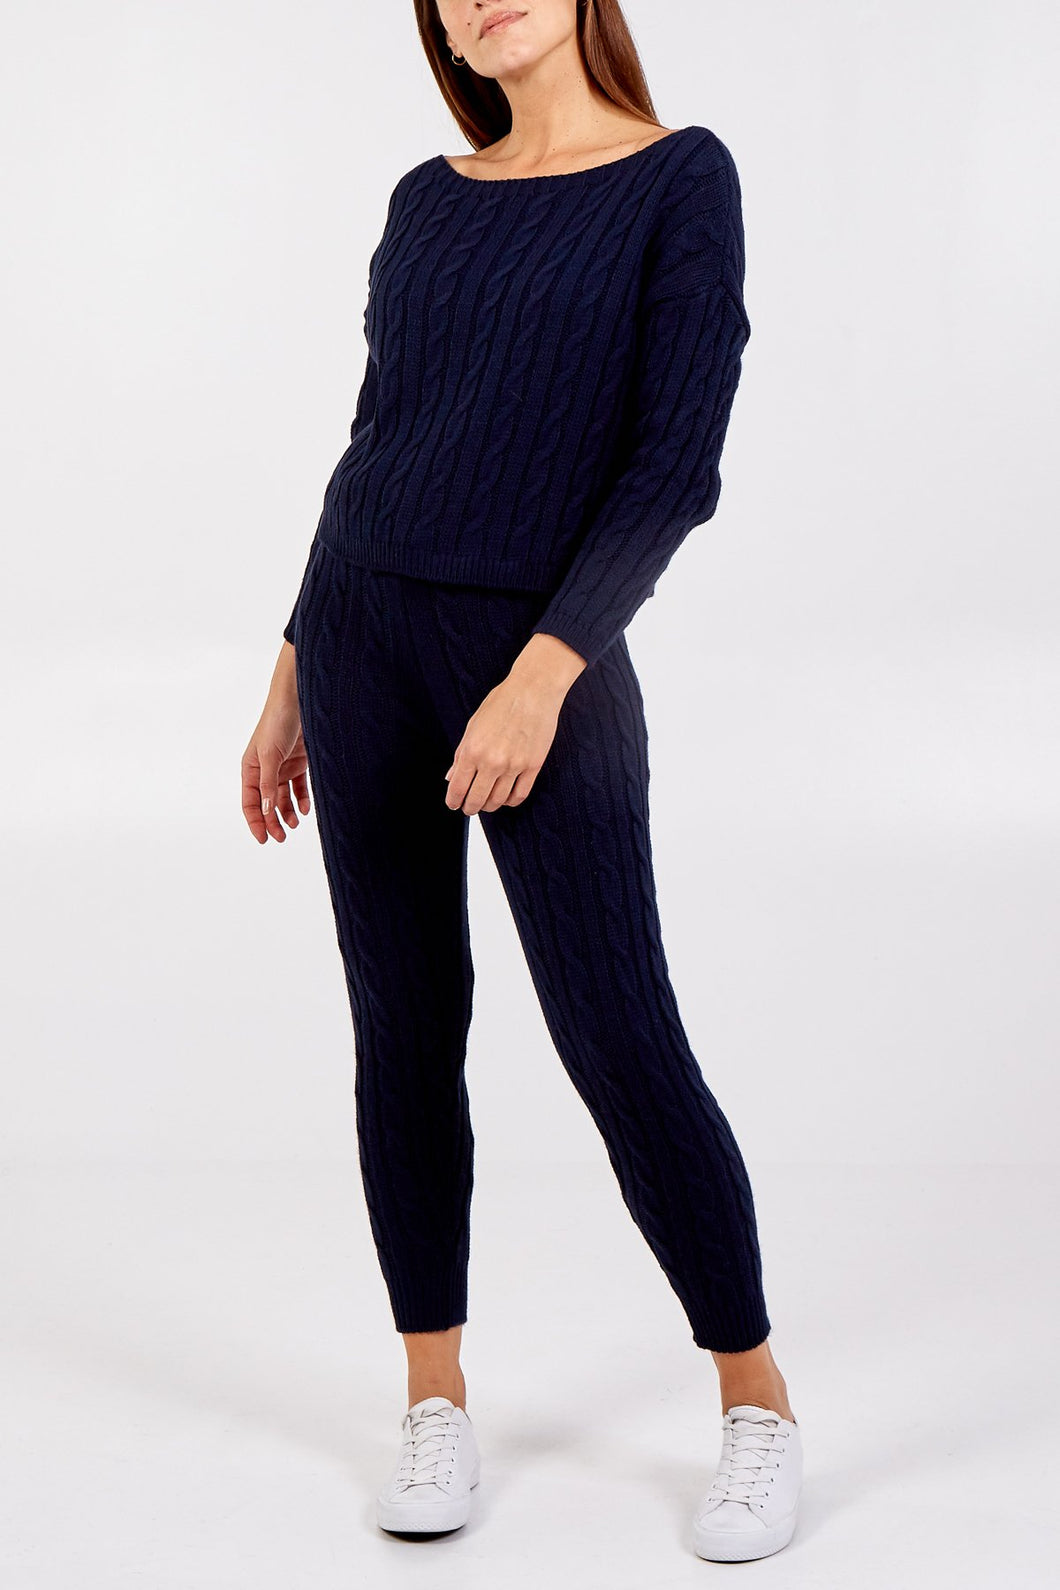 Cable Knit Two Piece Co-Ord Navy Blue